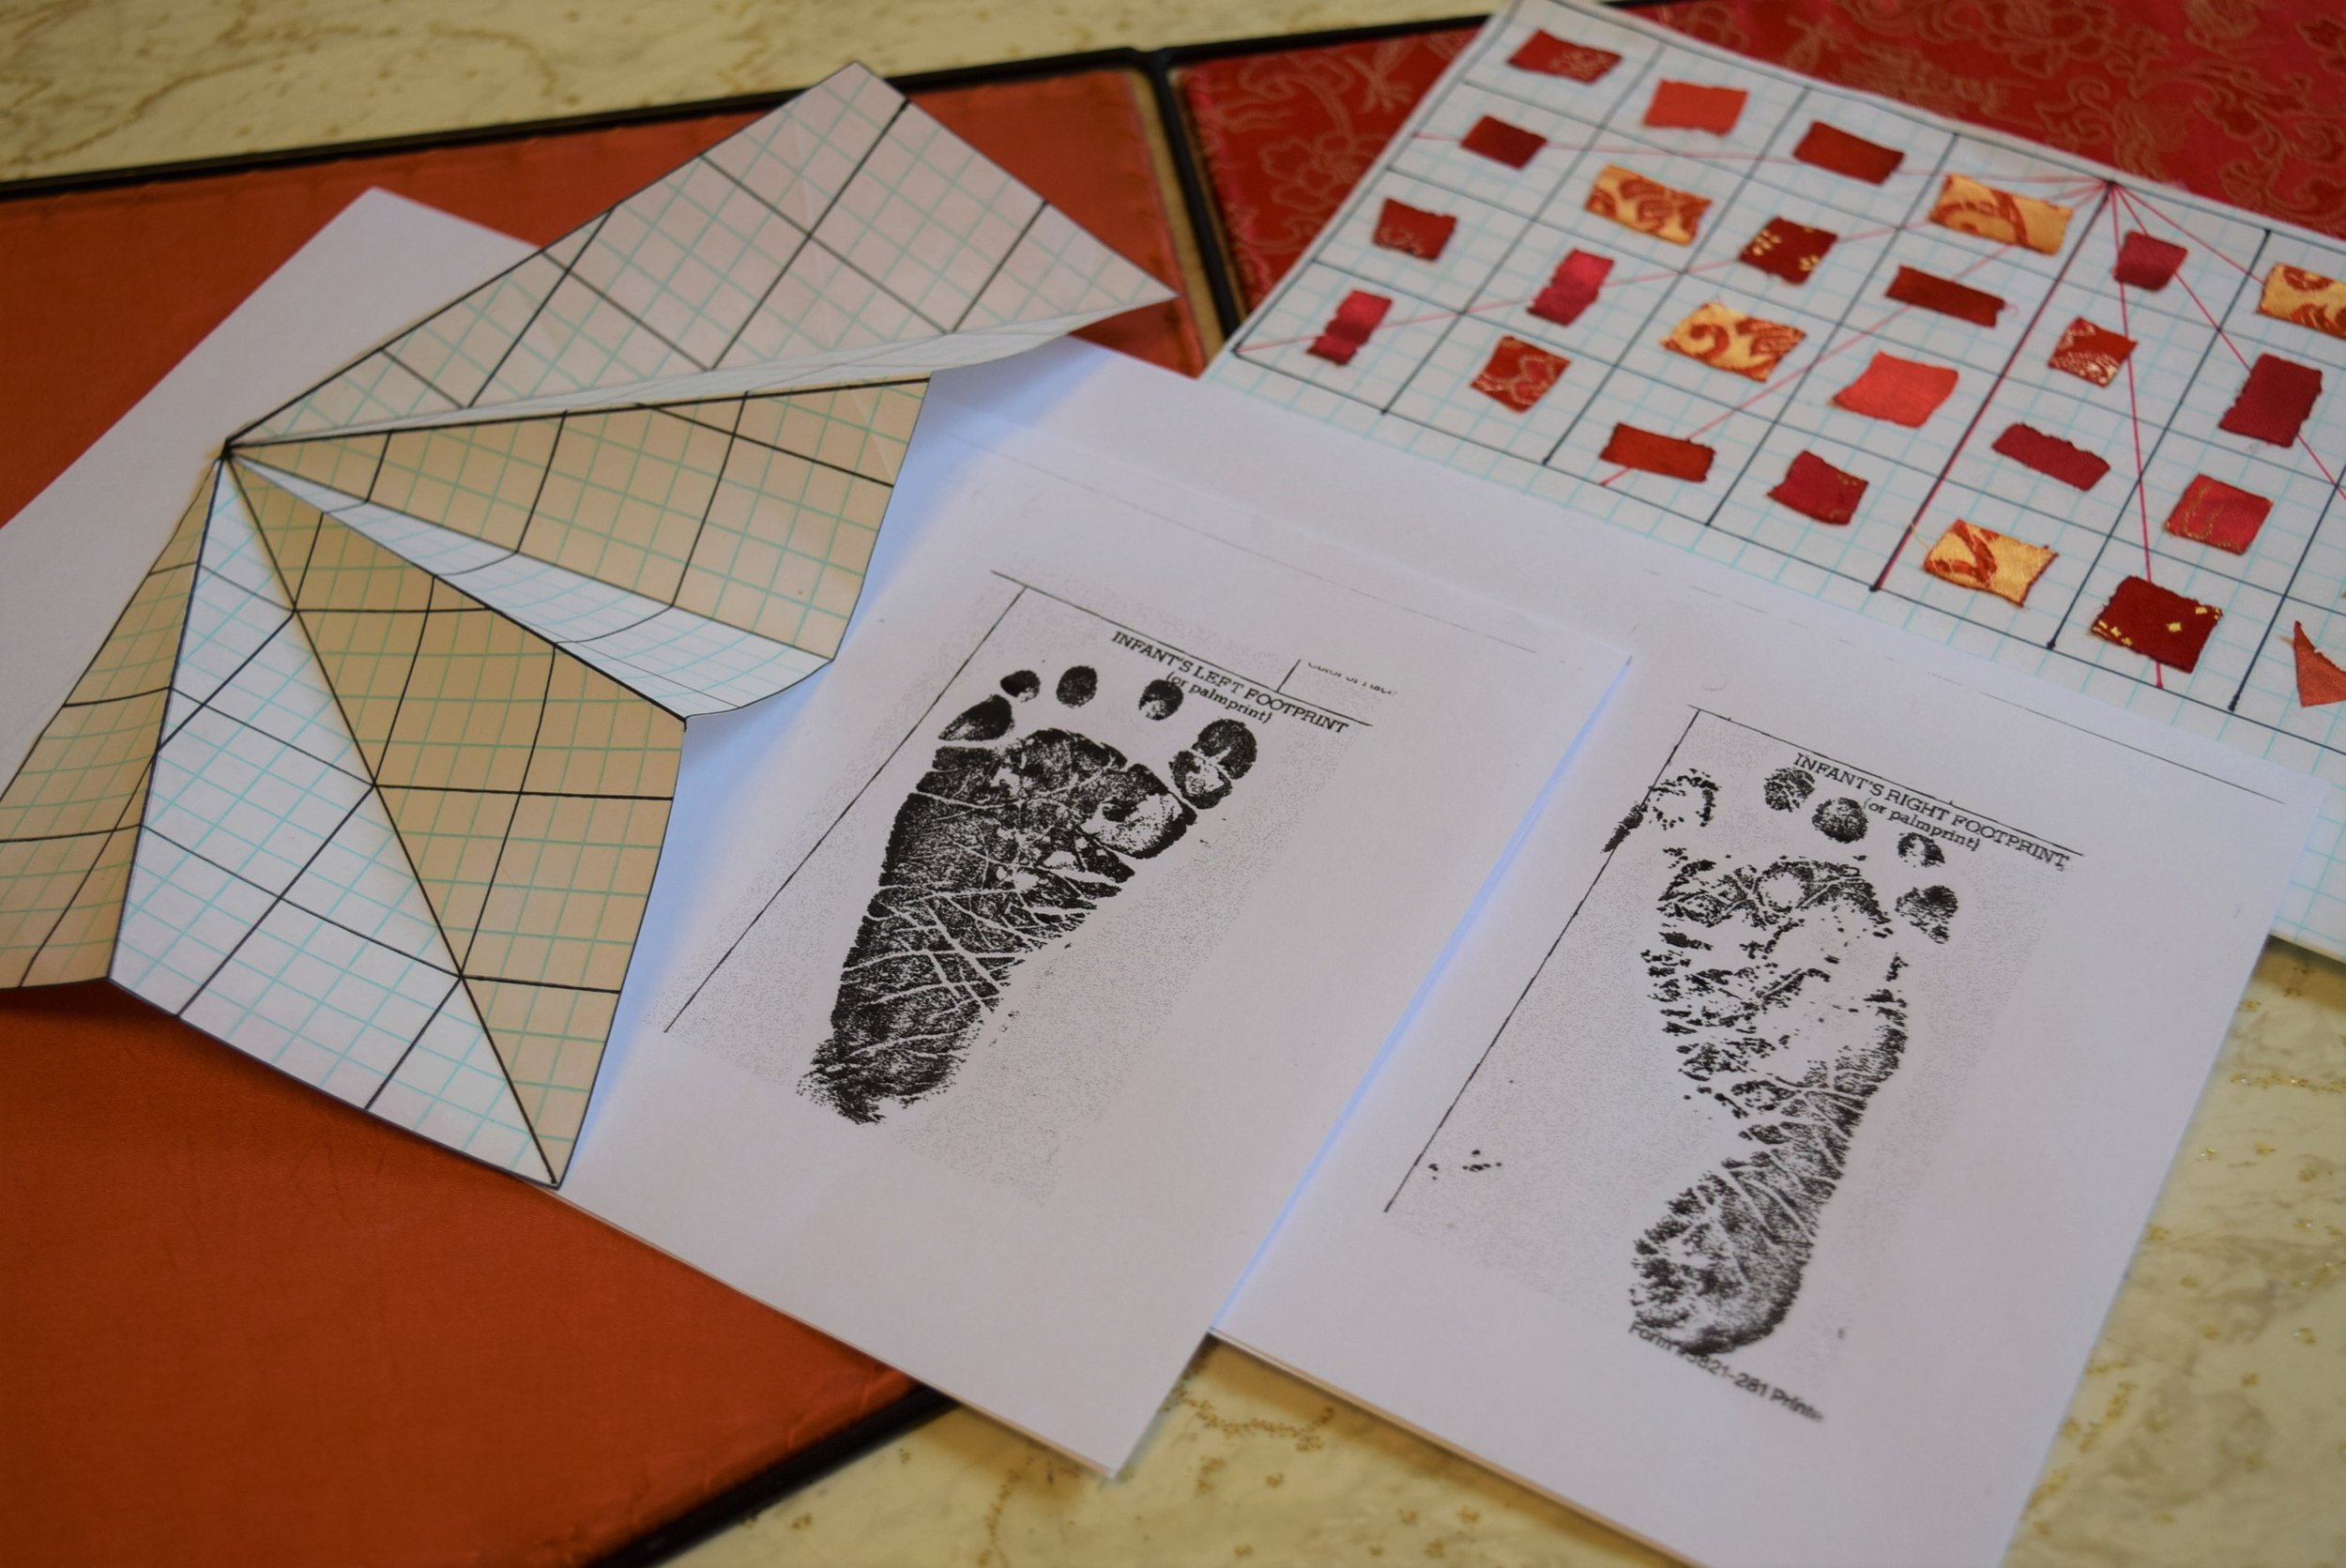 Here are preliminary plans and fabric samples. The completed first part of the piece was inspired from the foot print on the right. The next one will be from another infant's foot print (left) Interesting how I can see the personality in the prints already. The next one will be in green and blues. Voici des croquis préliminaires. La personalité des tout petits se devide déjà. J'ai agrandi l'empreintes de droite de 2000%. Le travaille commence pour celle de droite.